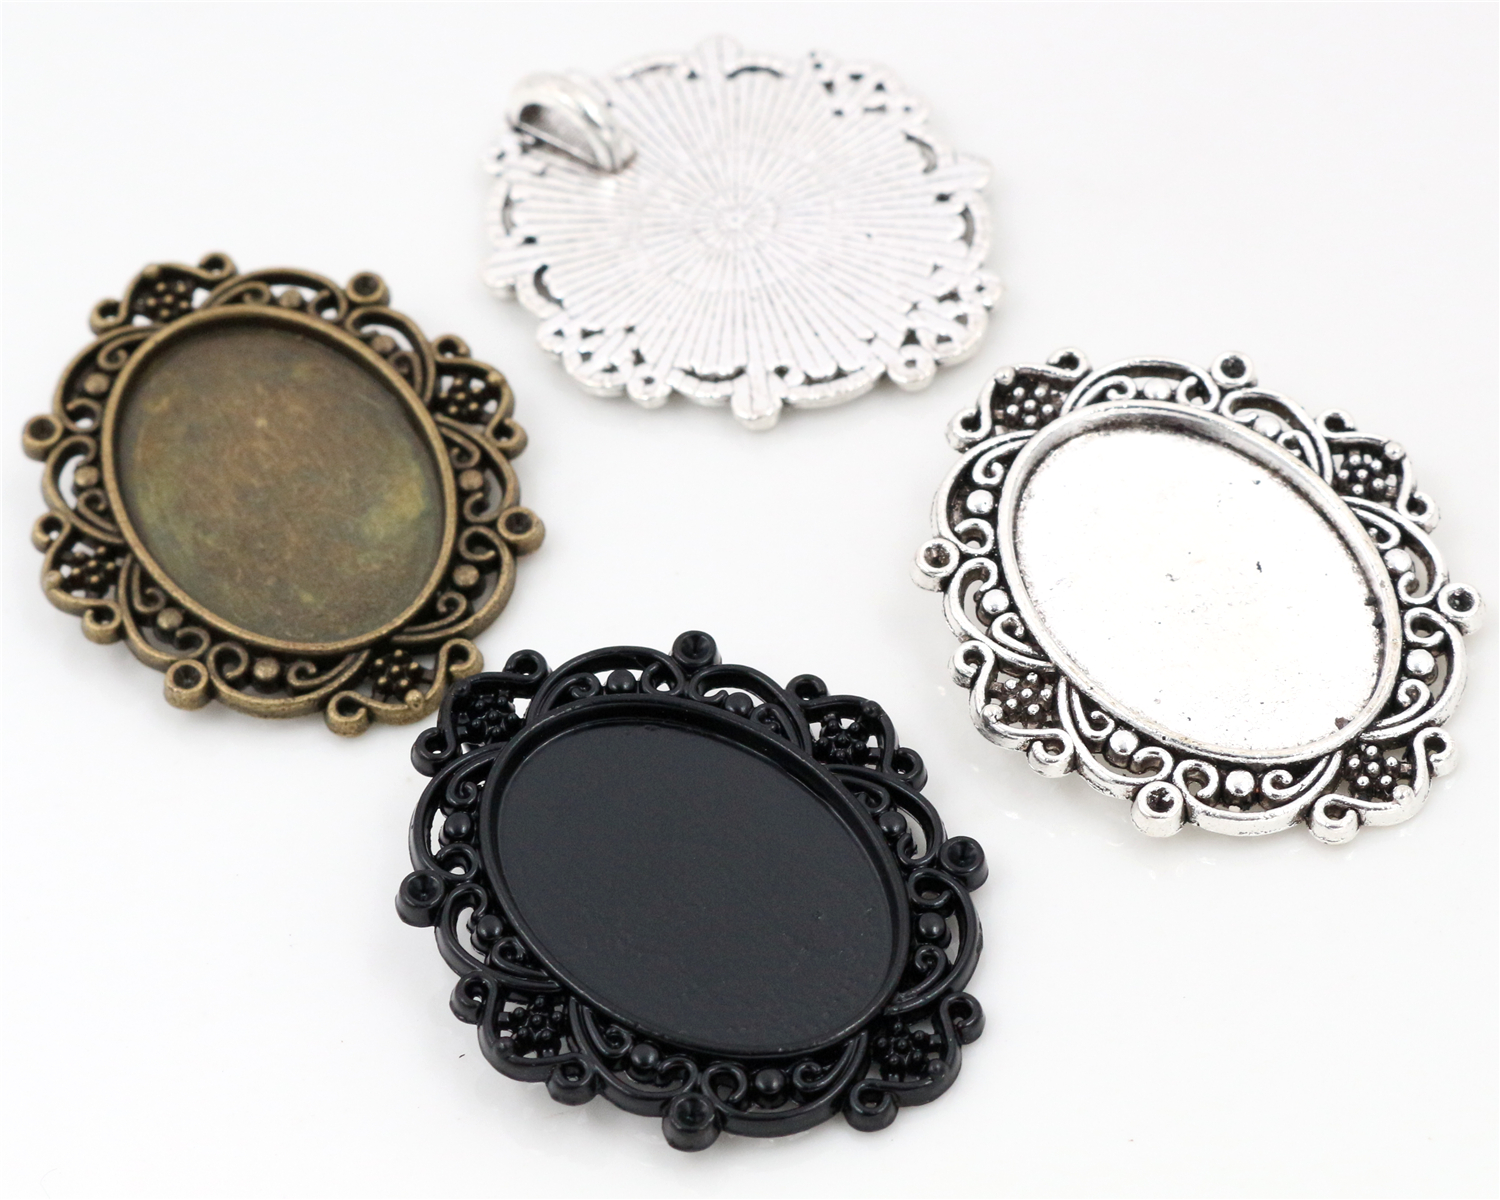 4pcs/Lot Fit 18x25mm Inner Size 3 Colors Plated Flowers Style Cameo Cabochon Base Setting Charms Pendant Necklace Findings